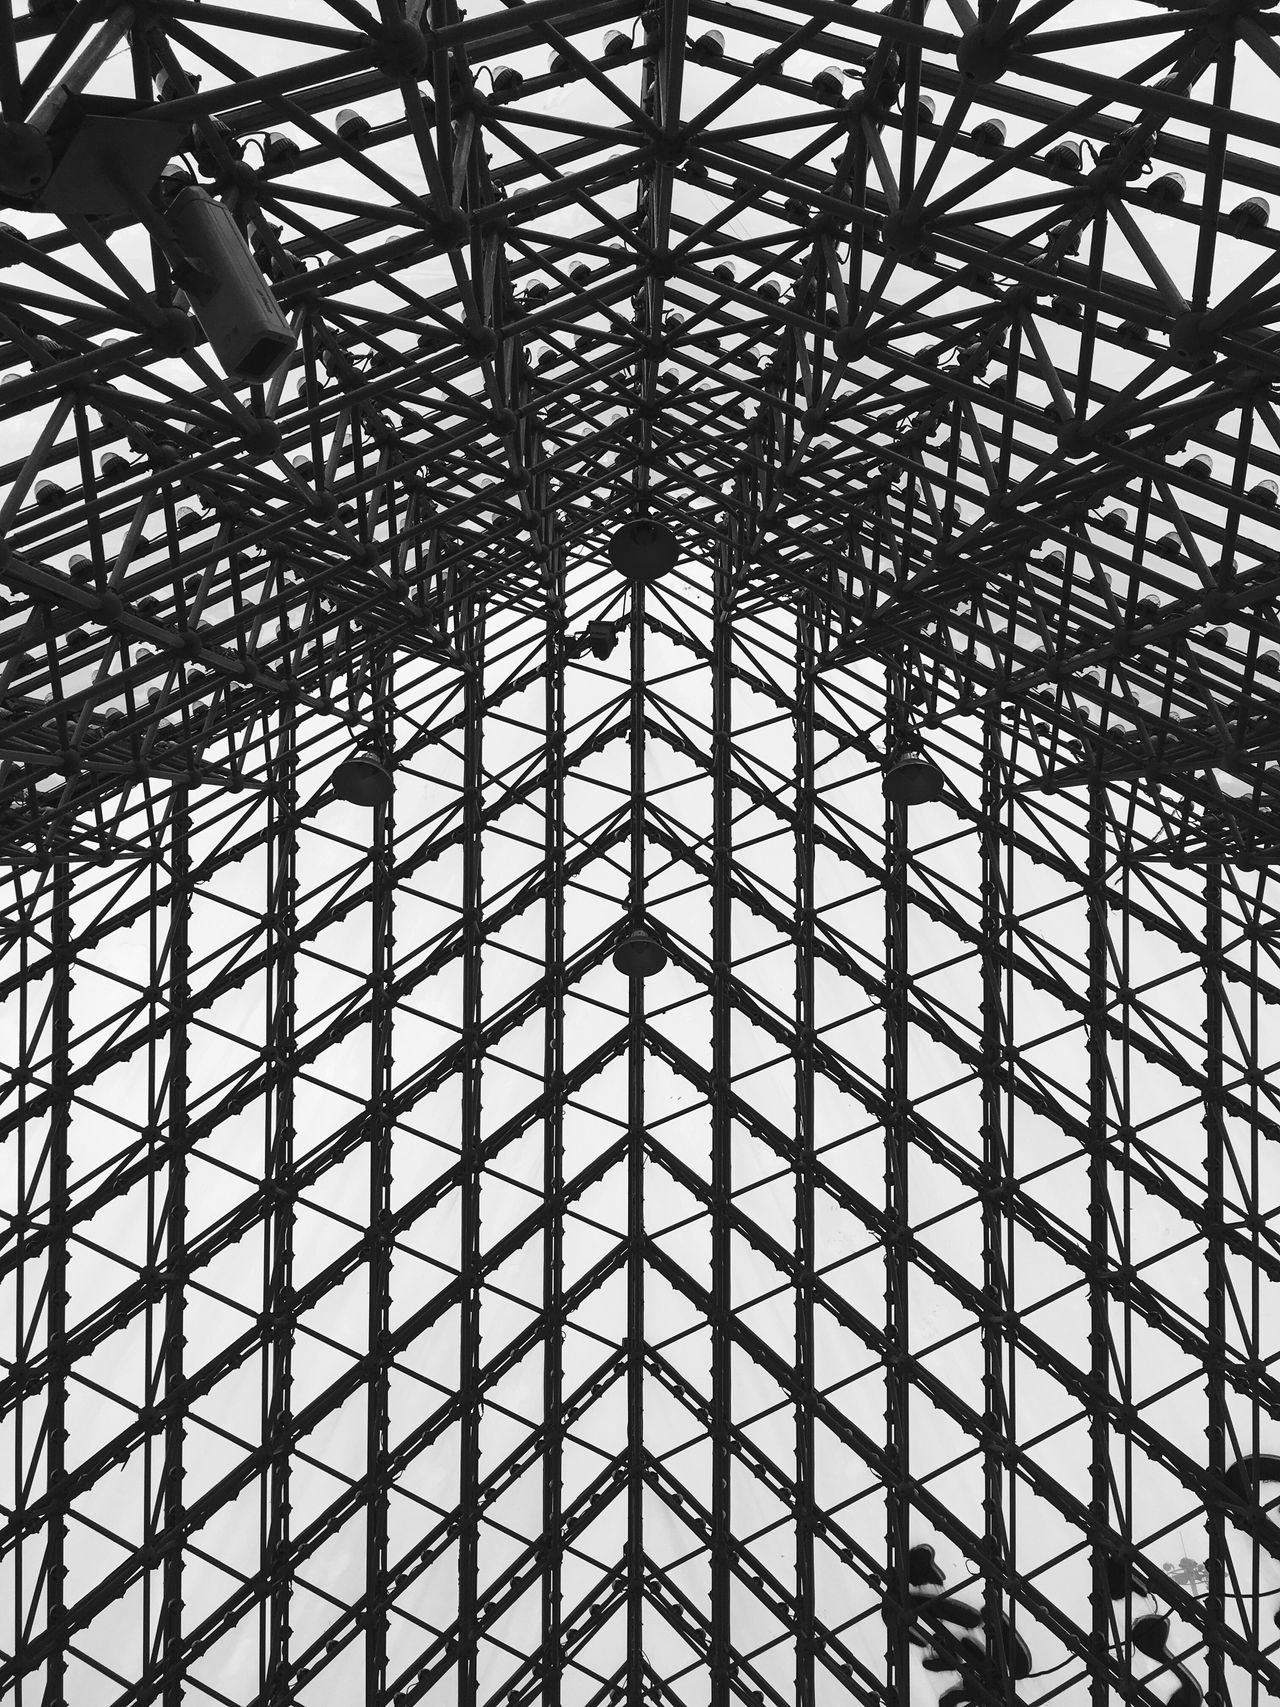 Modern Architecture at Window of the World Pyramid in Shenzhen - China Window Of The World  Architecture Chinese Architecture Black And White China Architectural Detail Modern Architecture Abstract Architectural Building Interior Shenzhen Monochrome Chinese Lattice Pattern Pattern Pyramids Inside Pyramid